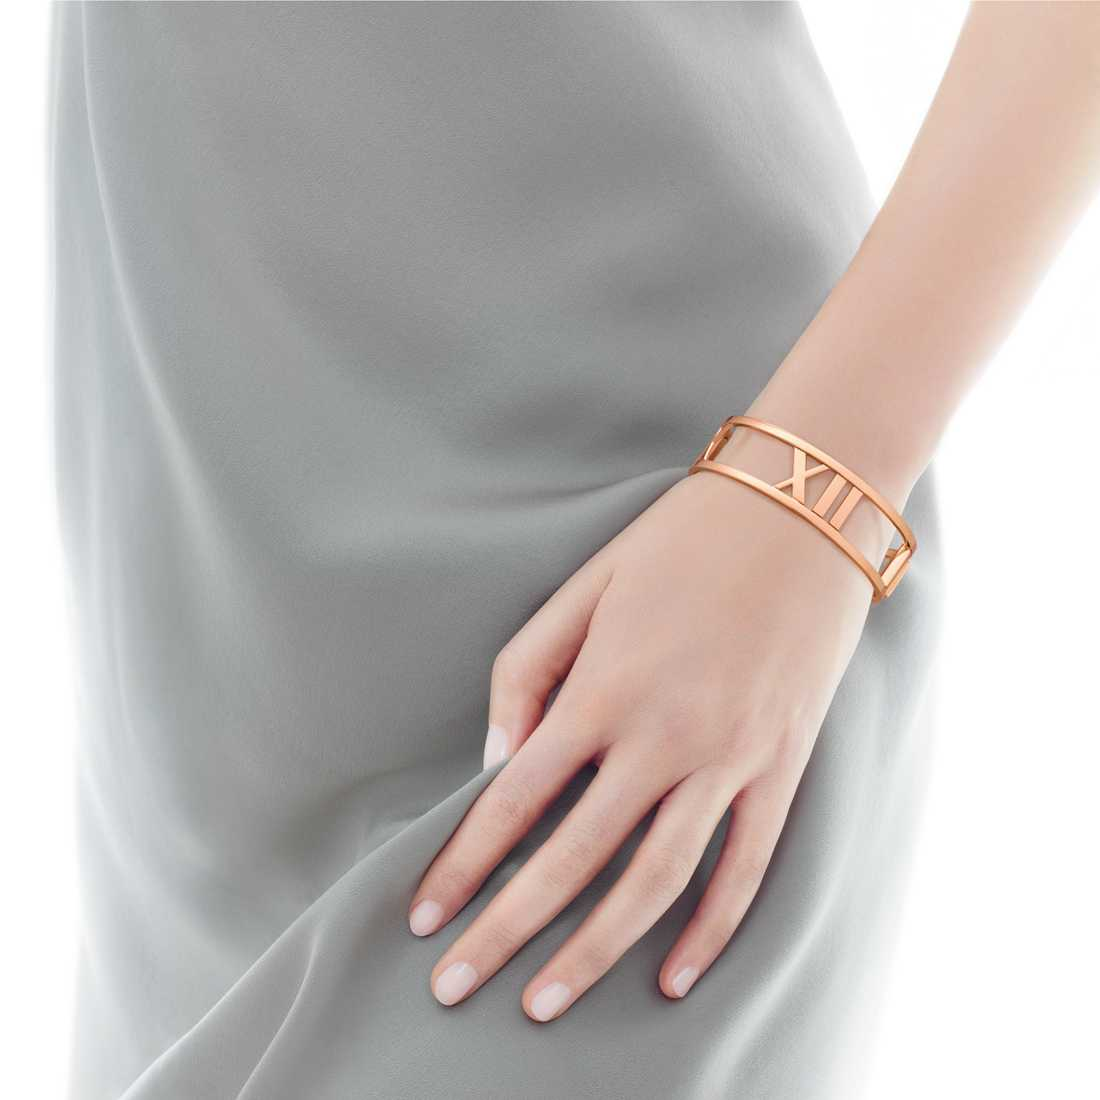 Tiffany's Atlas Medium Bangle Rose Gold